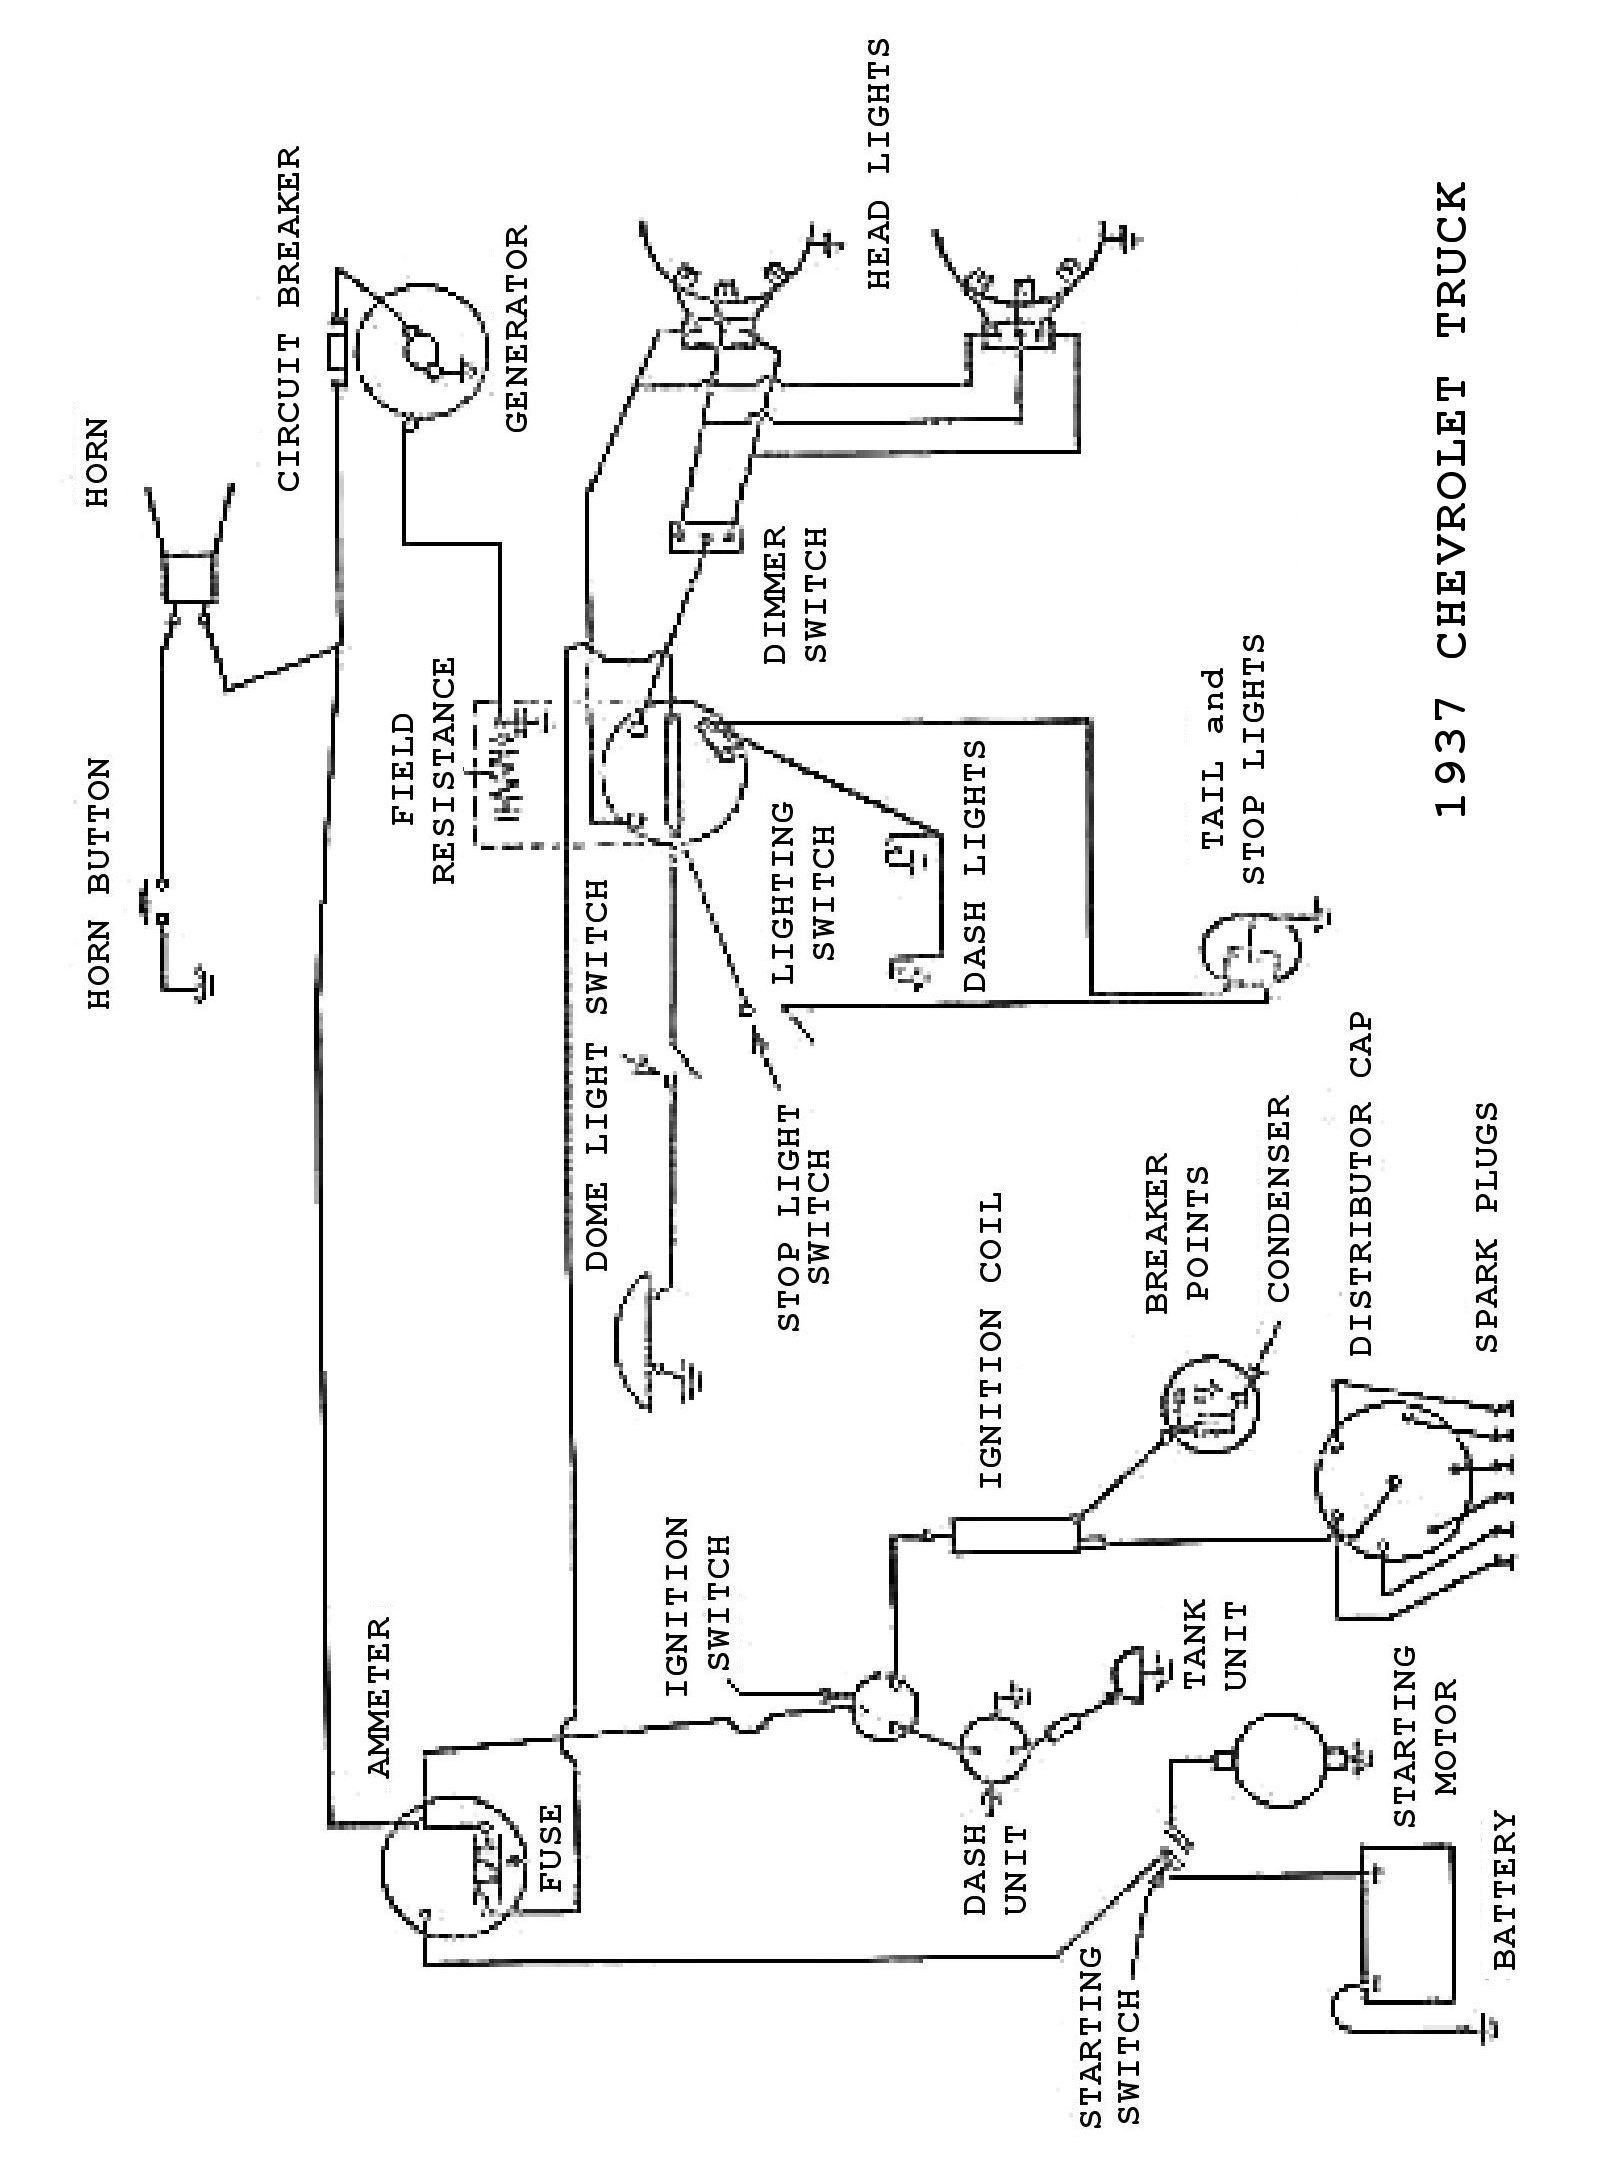 216 Chevy Engine Diagram Wiring Diagrams My Of